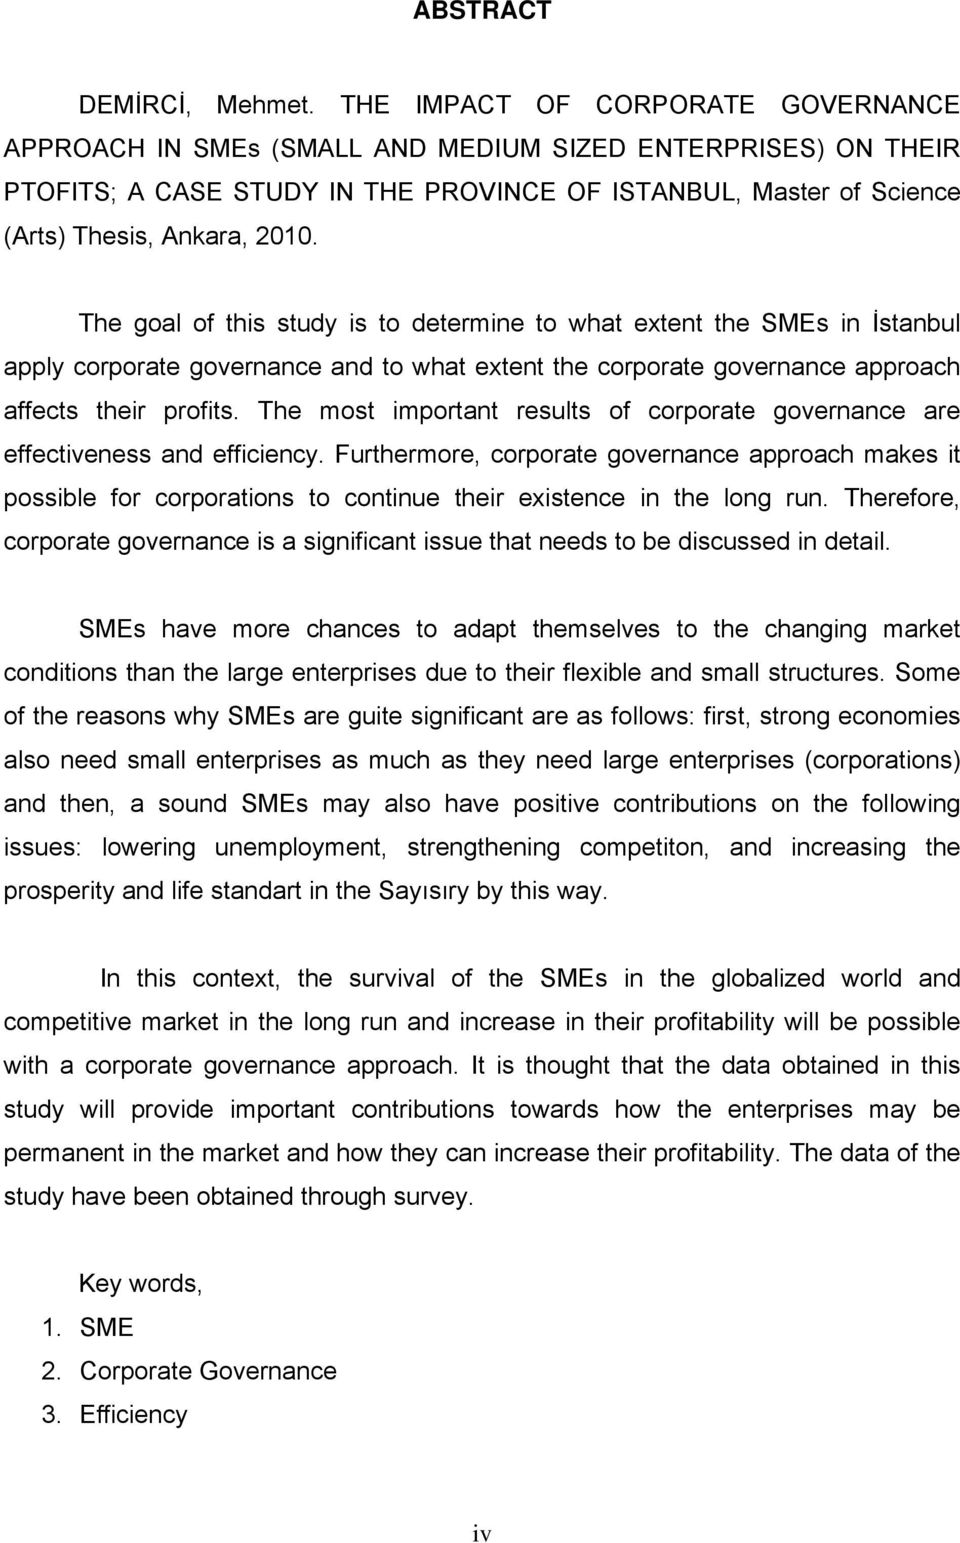 The goal of this study is to determine to what extent the SMEs in İstanbul apply corporate governance and to what extent the corporate governance approach affects their profits.